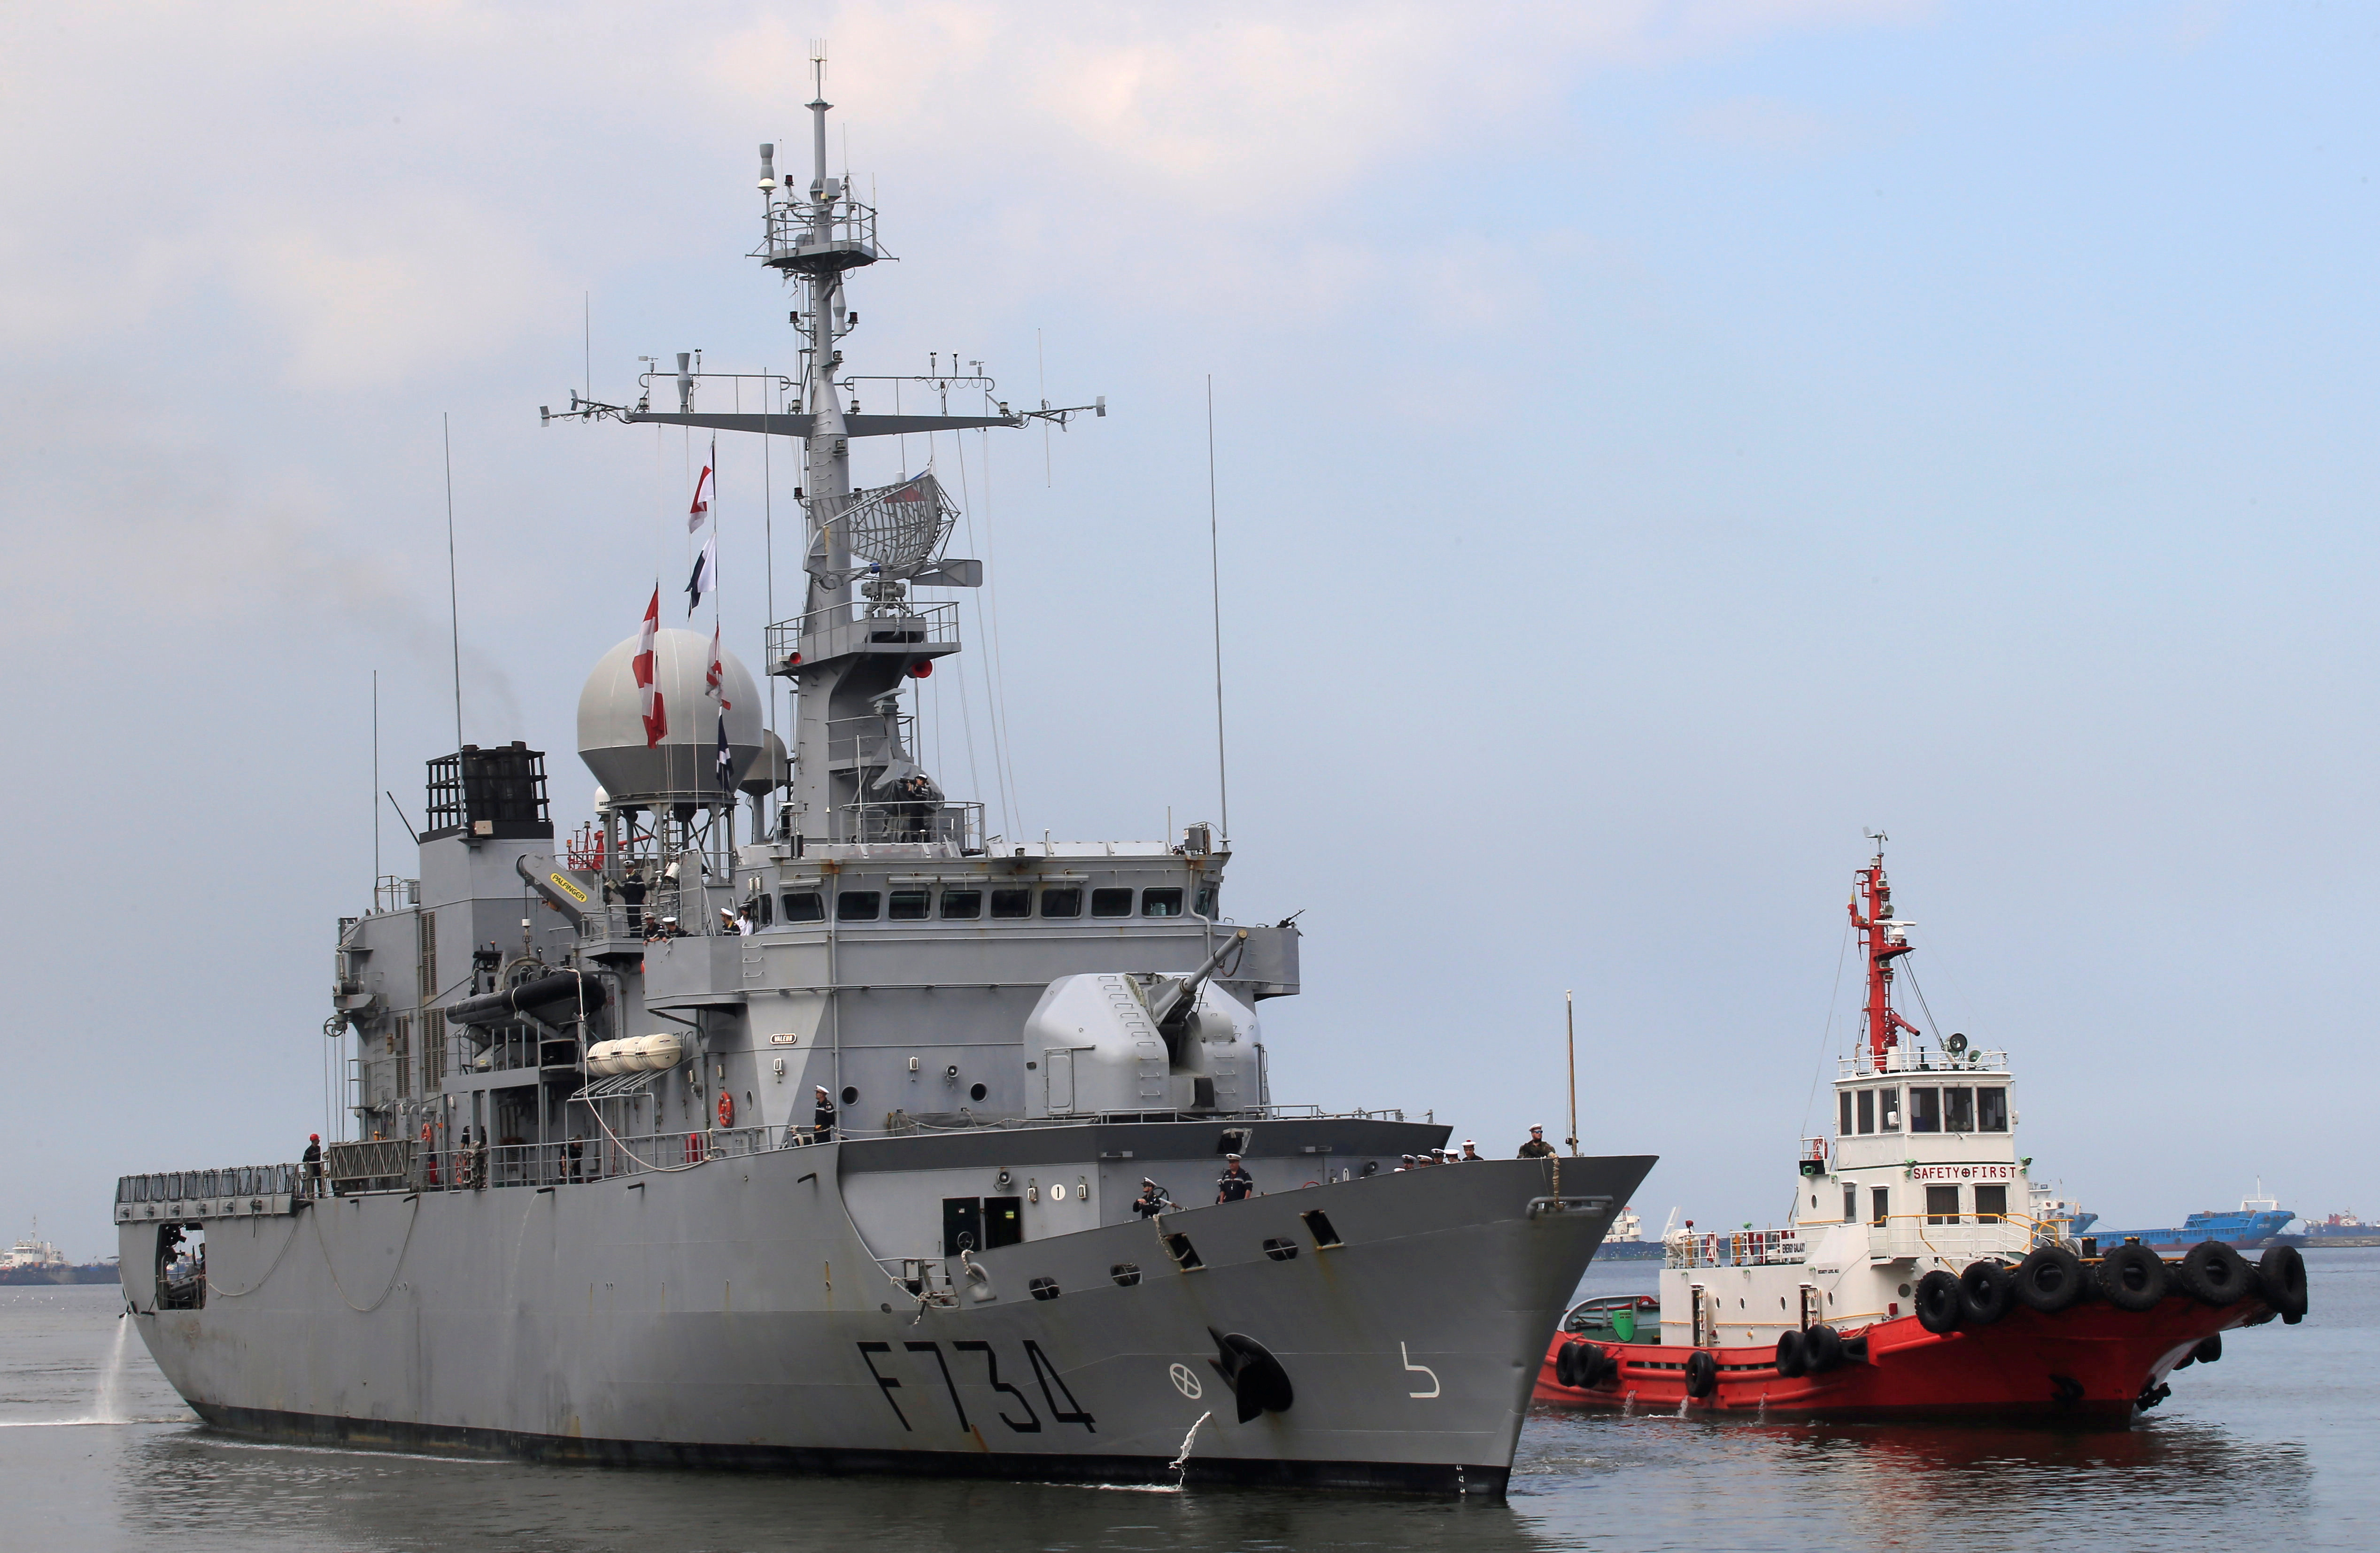 A tugboat escorts French Navy ship Vendemiaire (F734), a Floreal-classlight surveillance frigate of the French Marine Nationale, upon its arrival for a five-day goodwill visit at a port in Metro Manila, Philippines, March 12, 2018.   REUTERS/Romeo Ranoco/File Photo